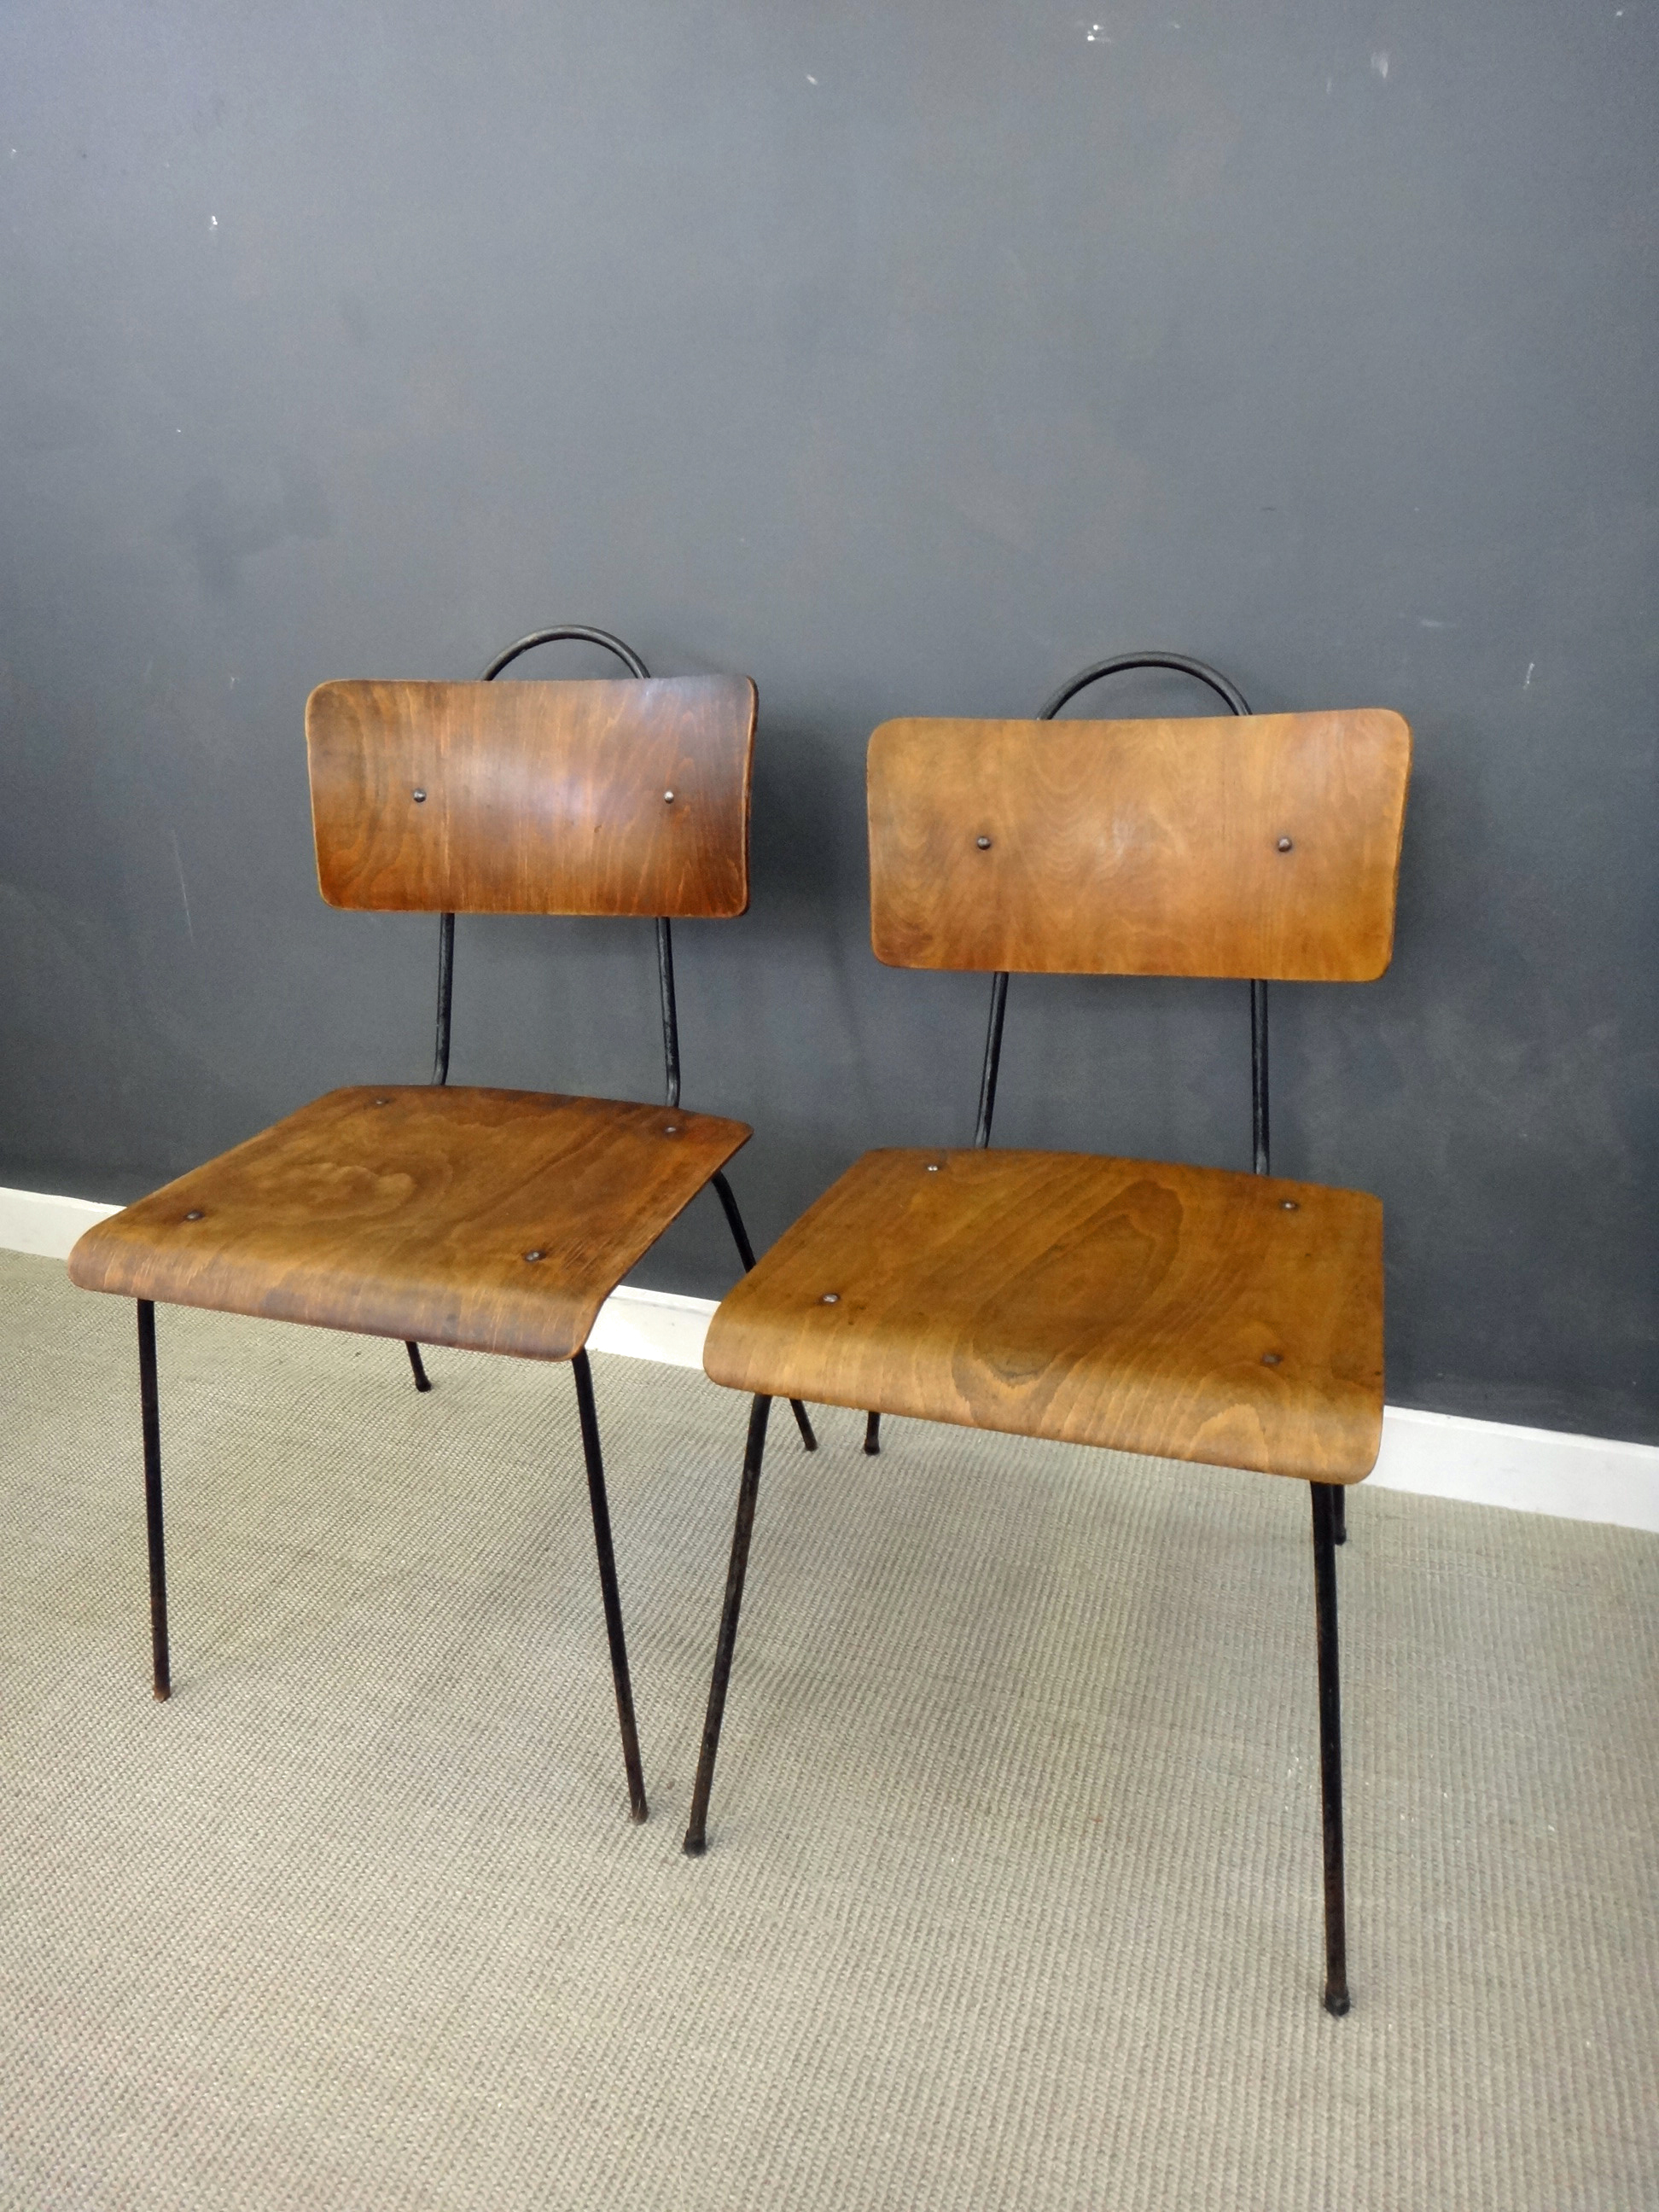 Pair Vintage Metal & Wood Chairs